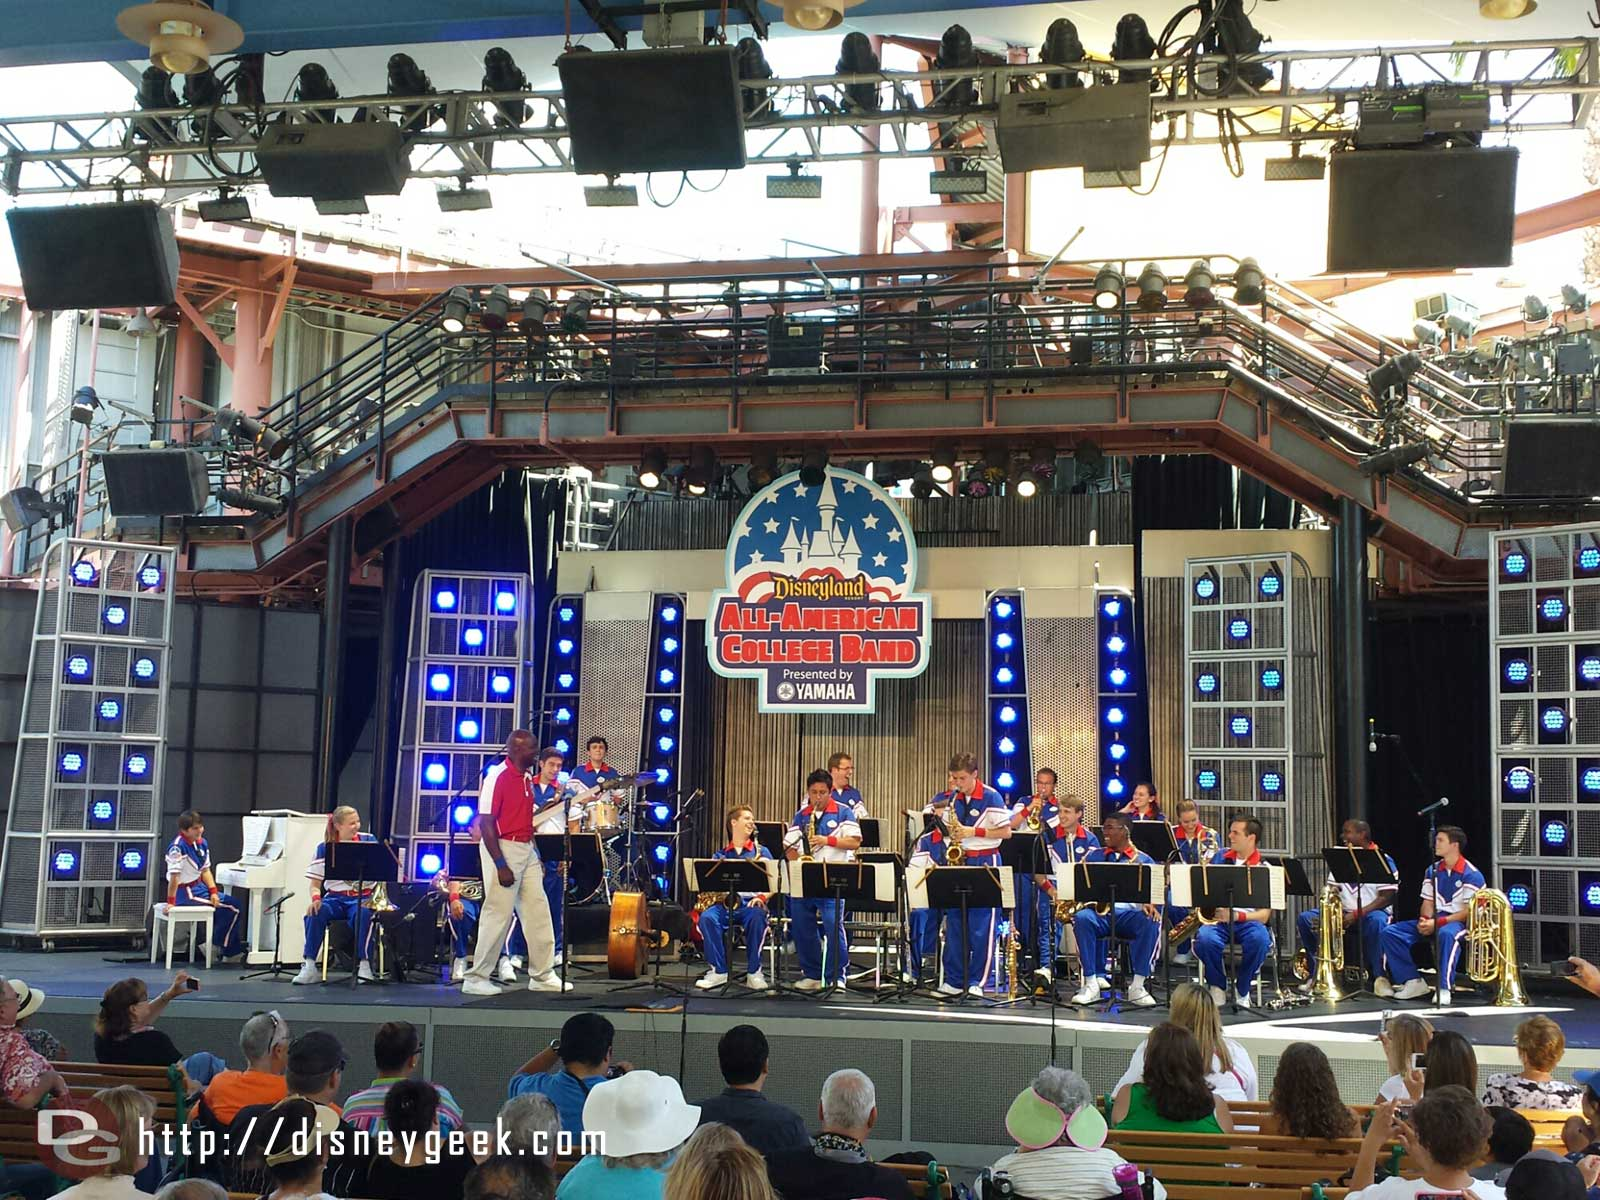 Enjoying one last set on the Backlot Stage by the 2014 #Disneyland All-American College Band